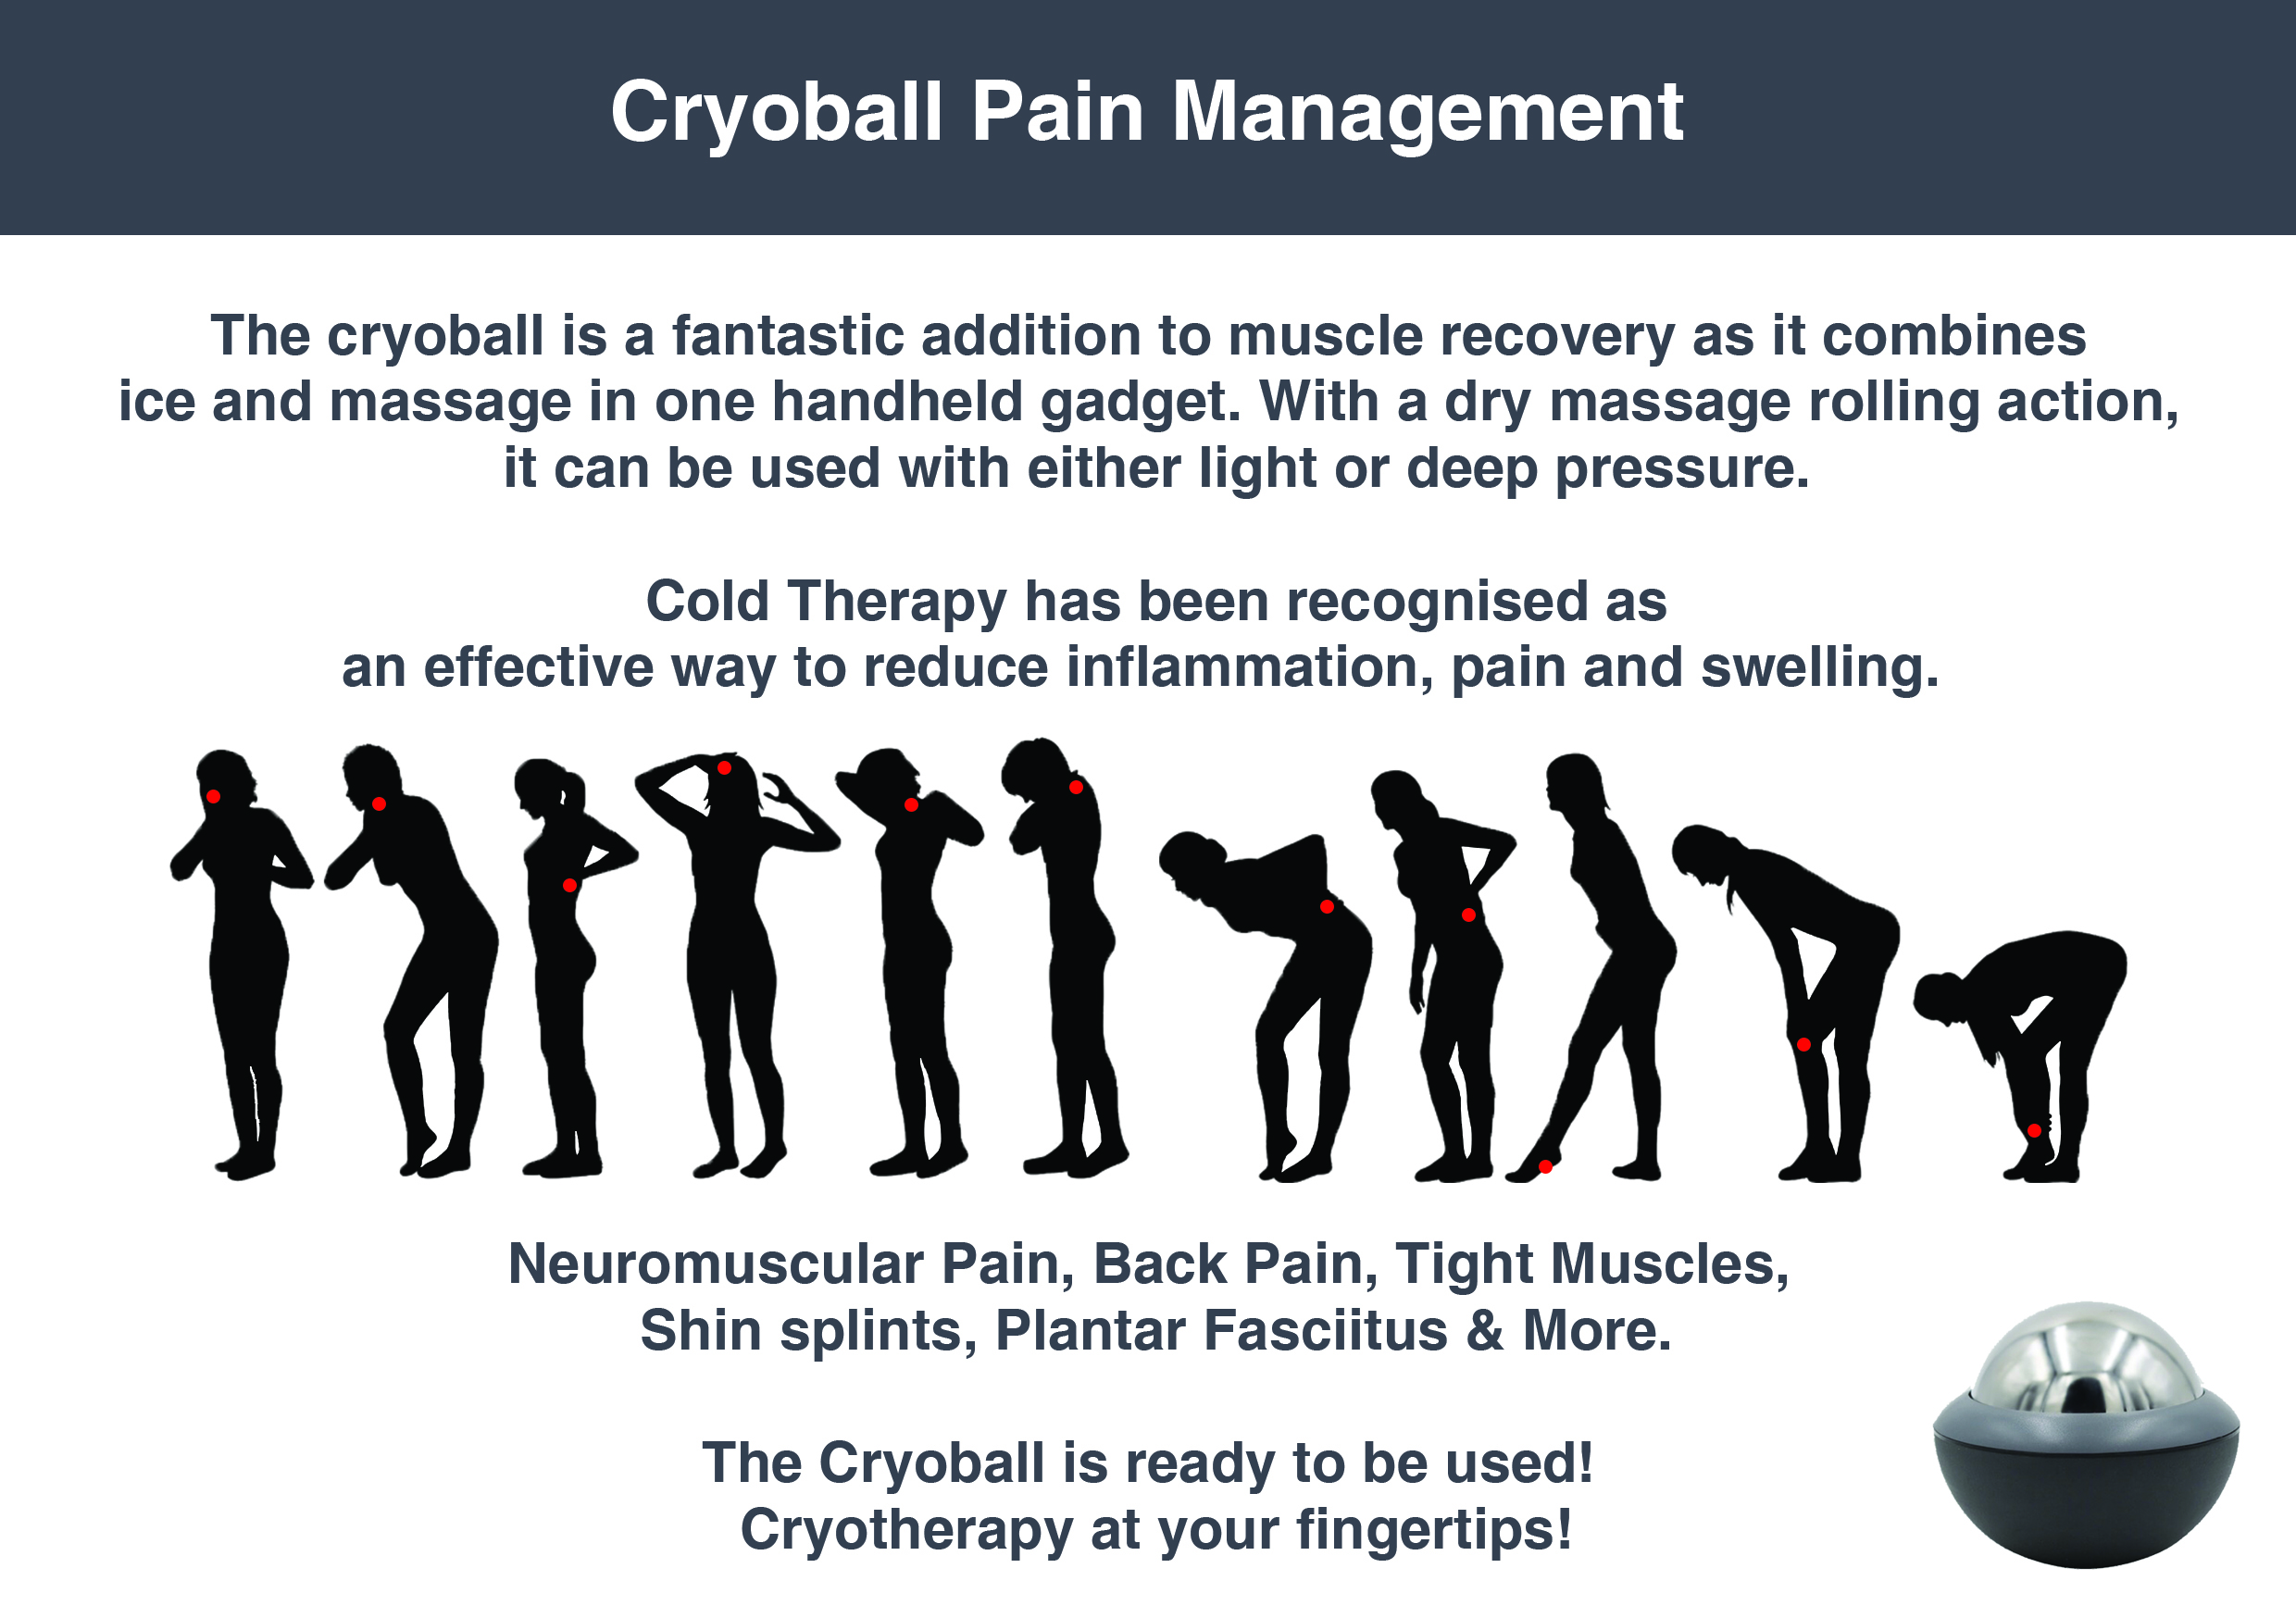 Cryo ball Pain Management